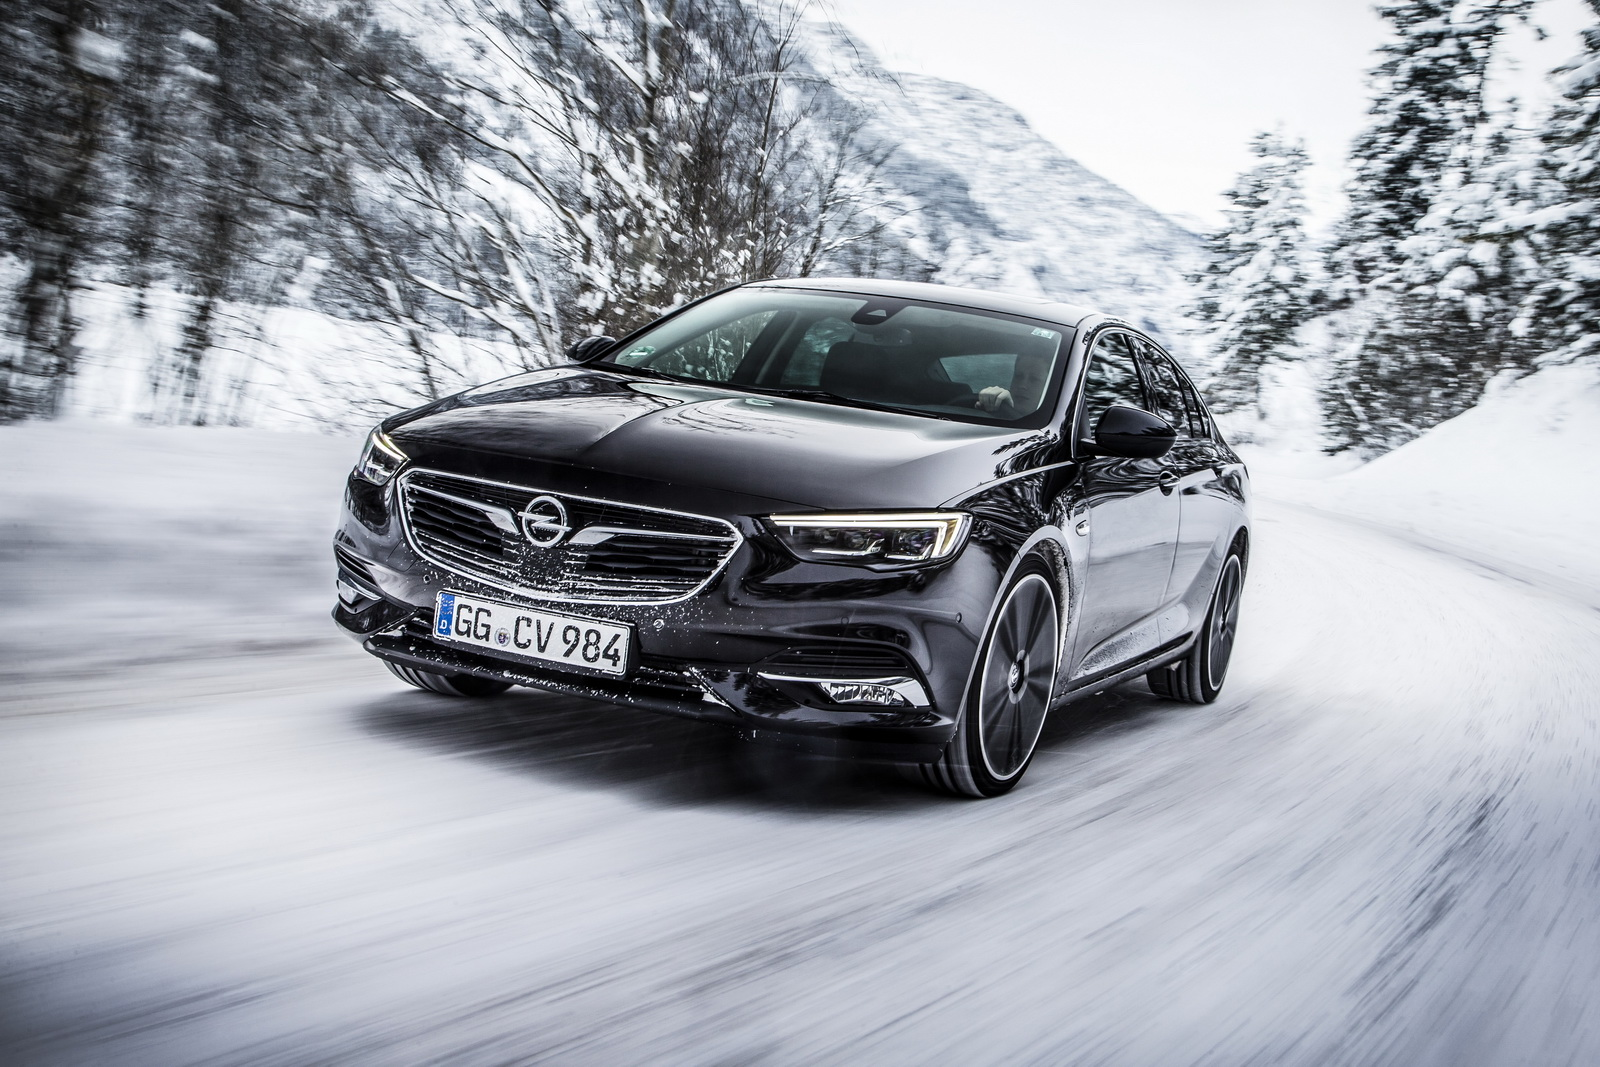 The new Opel Insignia Grand Sport 4x4 offers optimum dynamics, feel and handling in all situations.